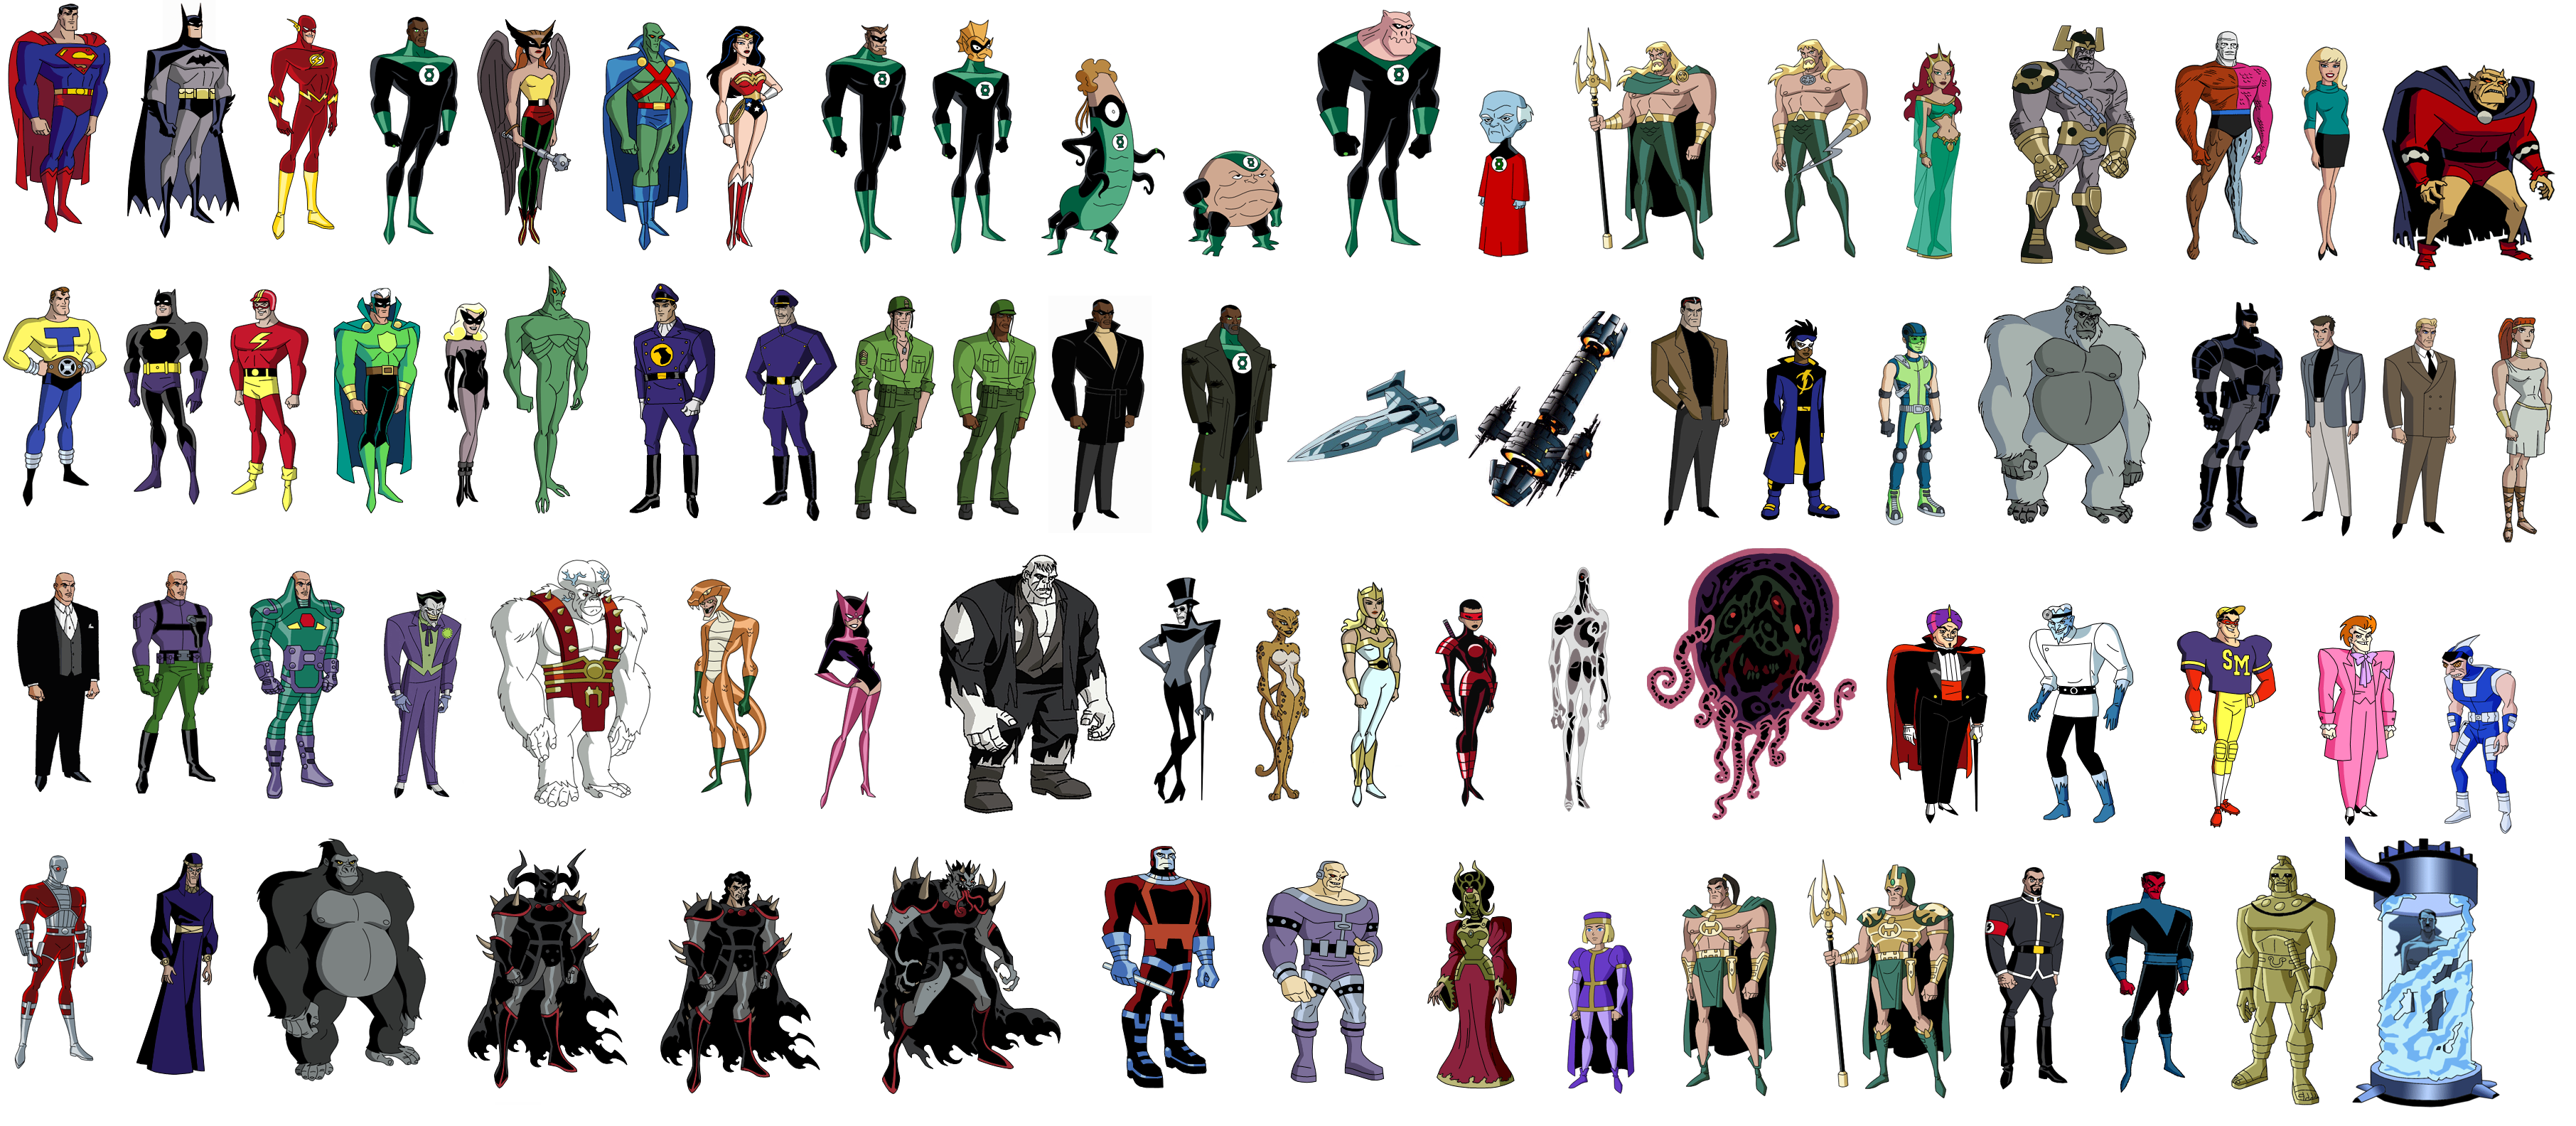 Justice League Unlimited characters designs by Bruce Timm ...